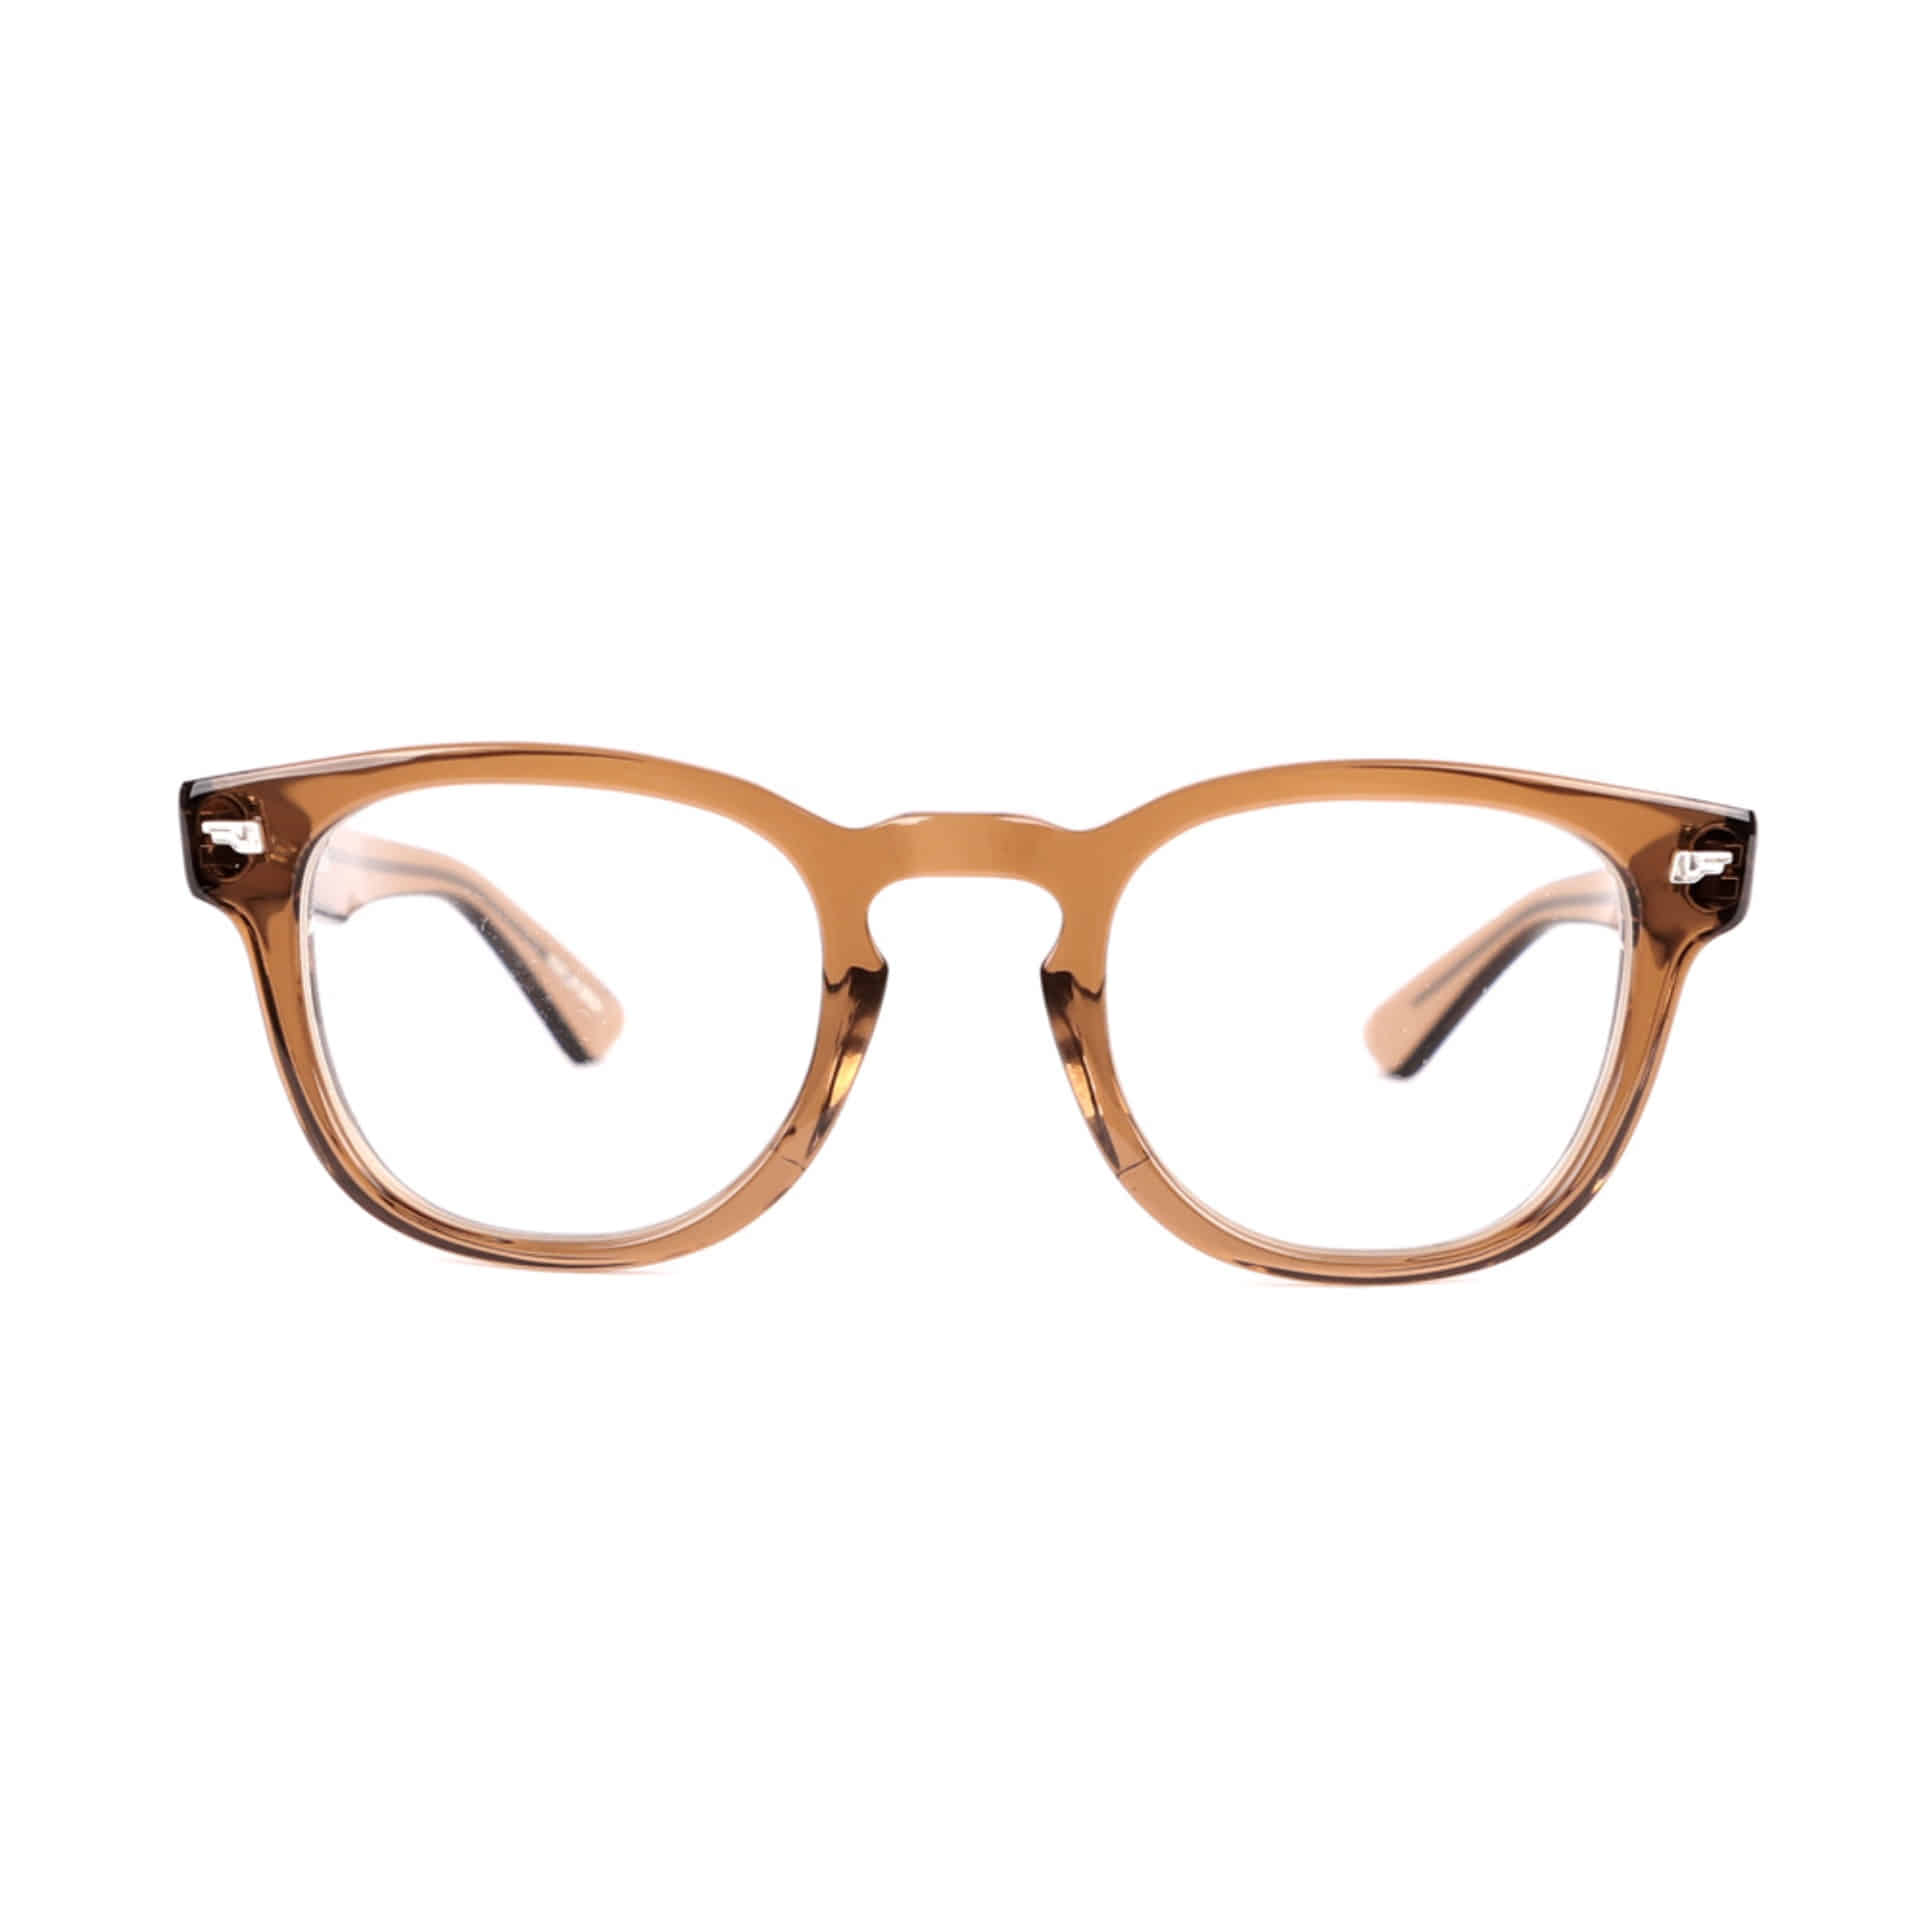 KANEKO OPTICAL X SD SUNGLASSES(BROWN X CLEAR)